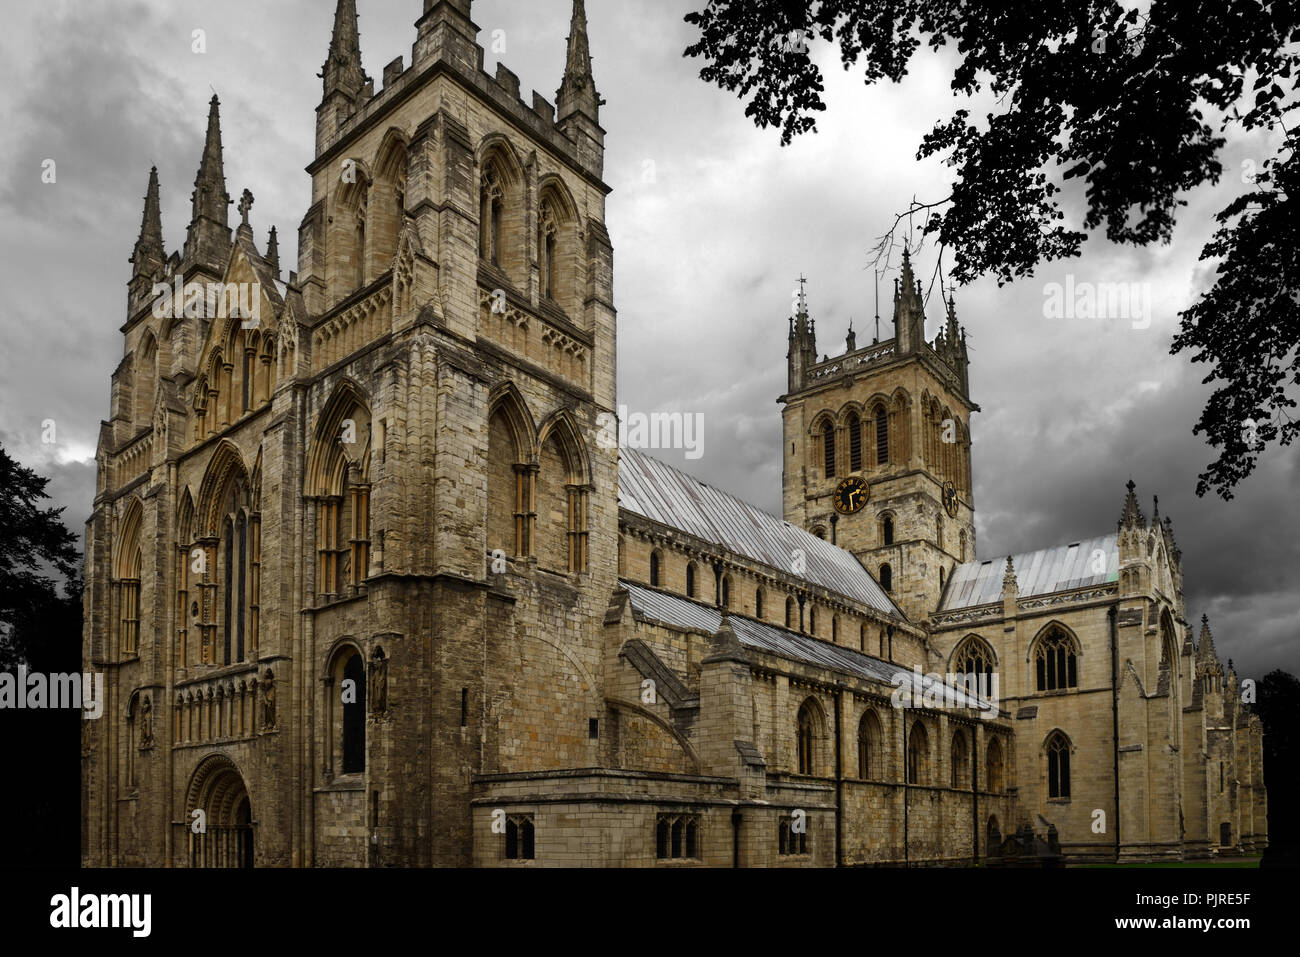 Selby Abbey is now an Anglican parish church in the town of Selby, North Yorkshire, and is a rare example of an abbey church of the medieval period. - Stock Image